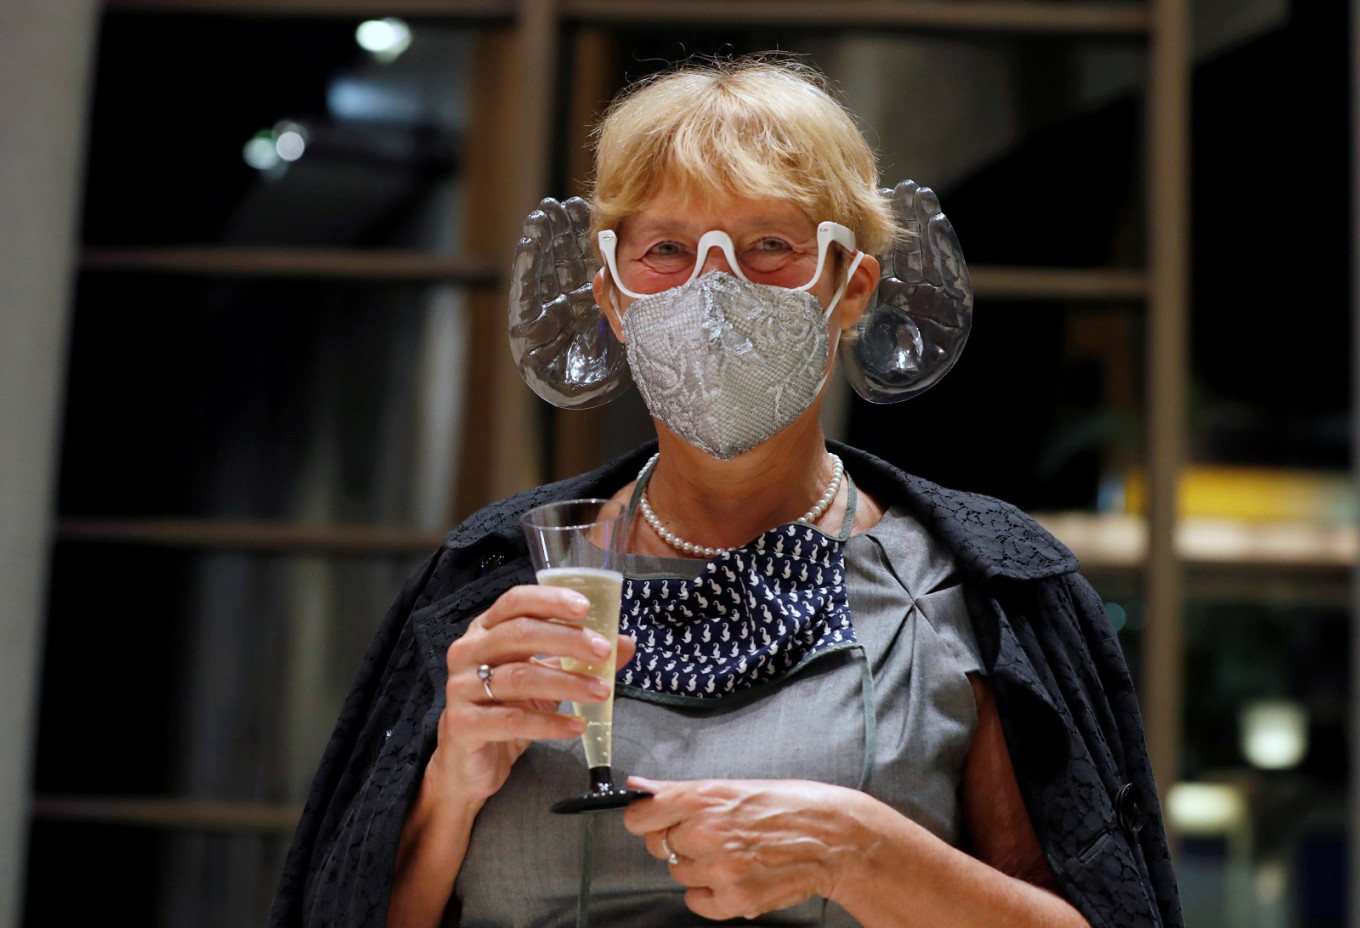 Hungarian orchestra conductor invents music-enhancing face mask